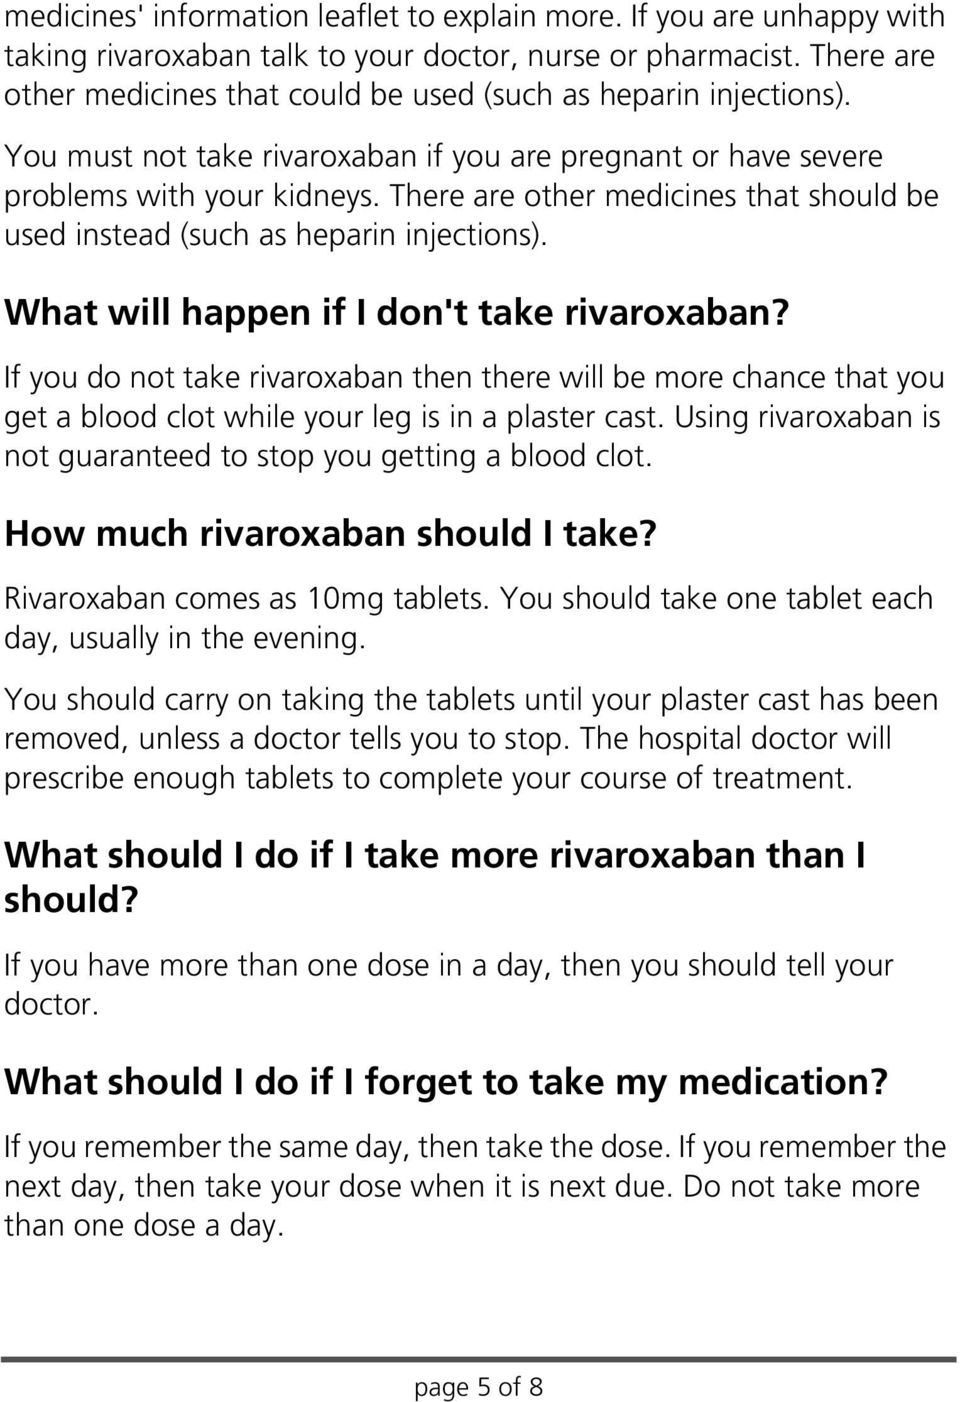 There are other medicines that should be used instead (such as heparin injections). What will happen if I don't take rivaroxaban?